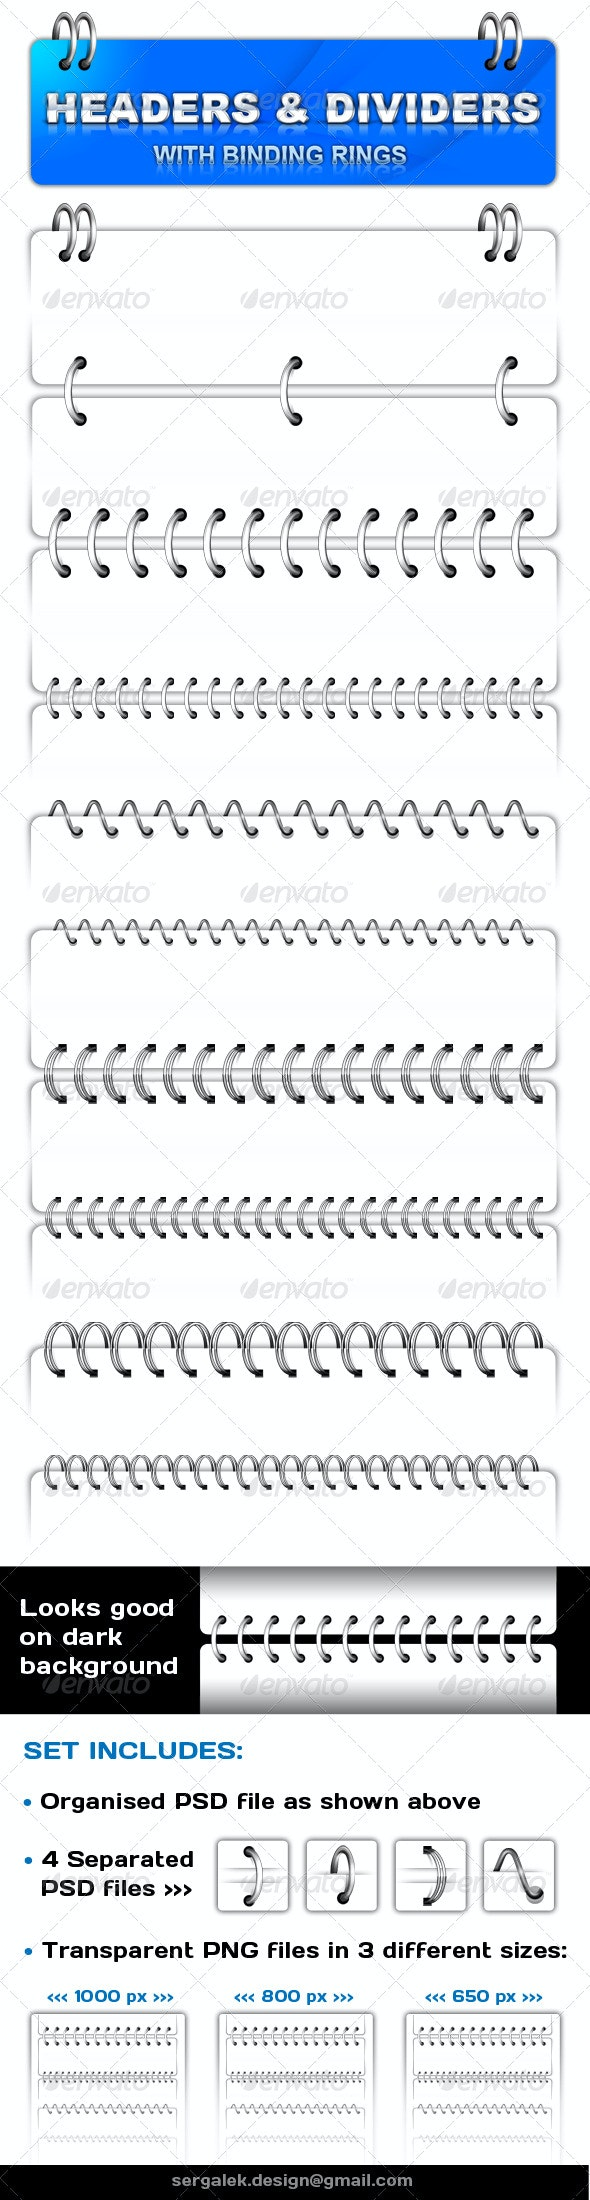 Headers & Dividers with Binding Rings  - Miscellaneous Web Elements